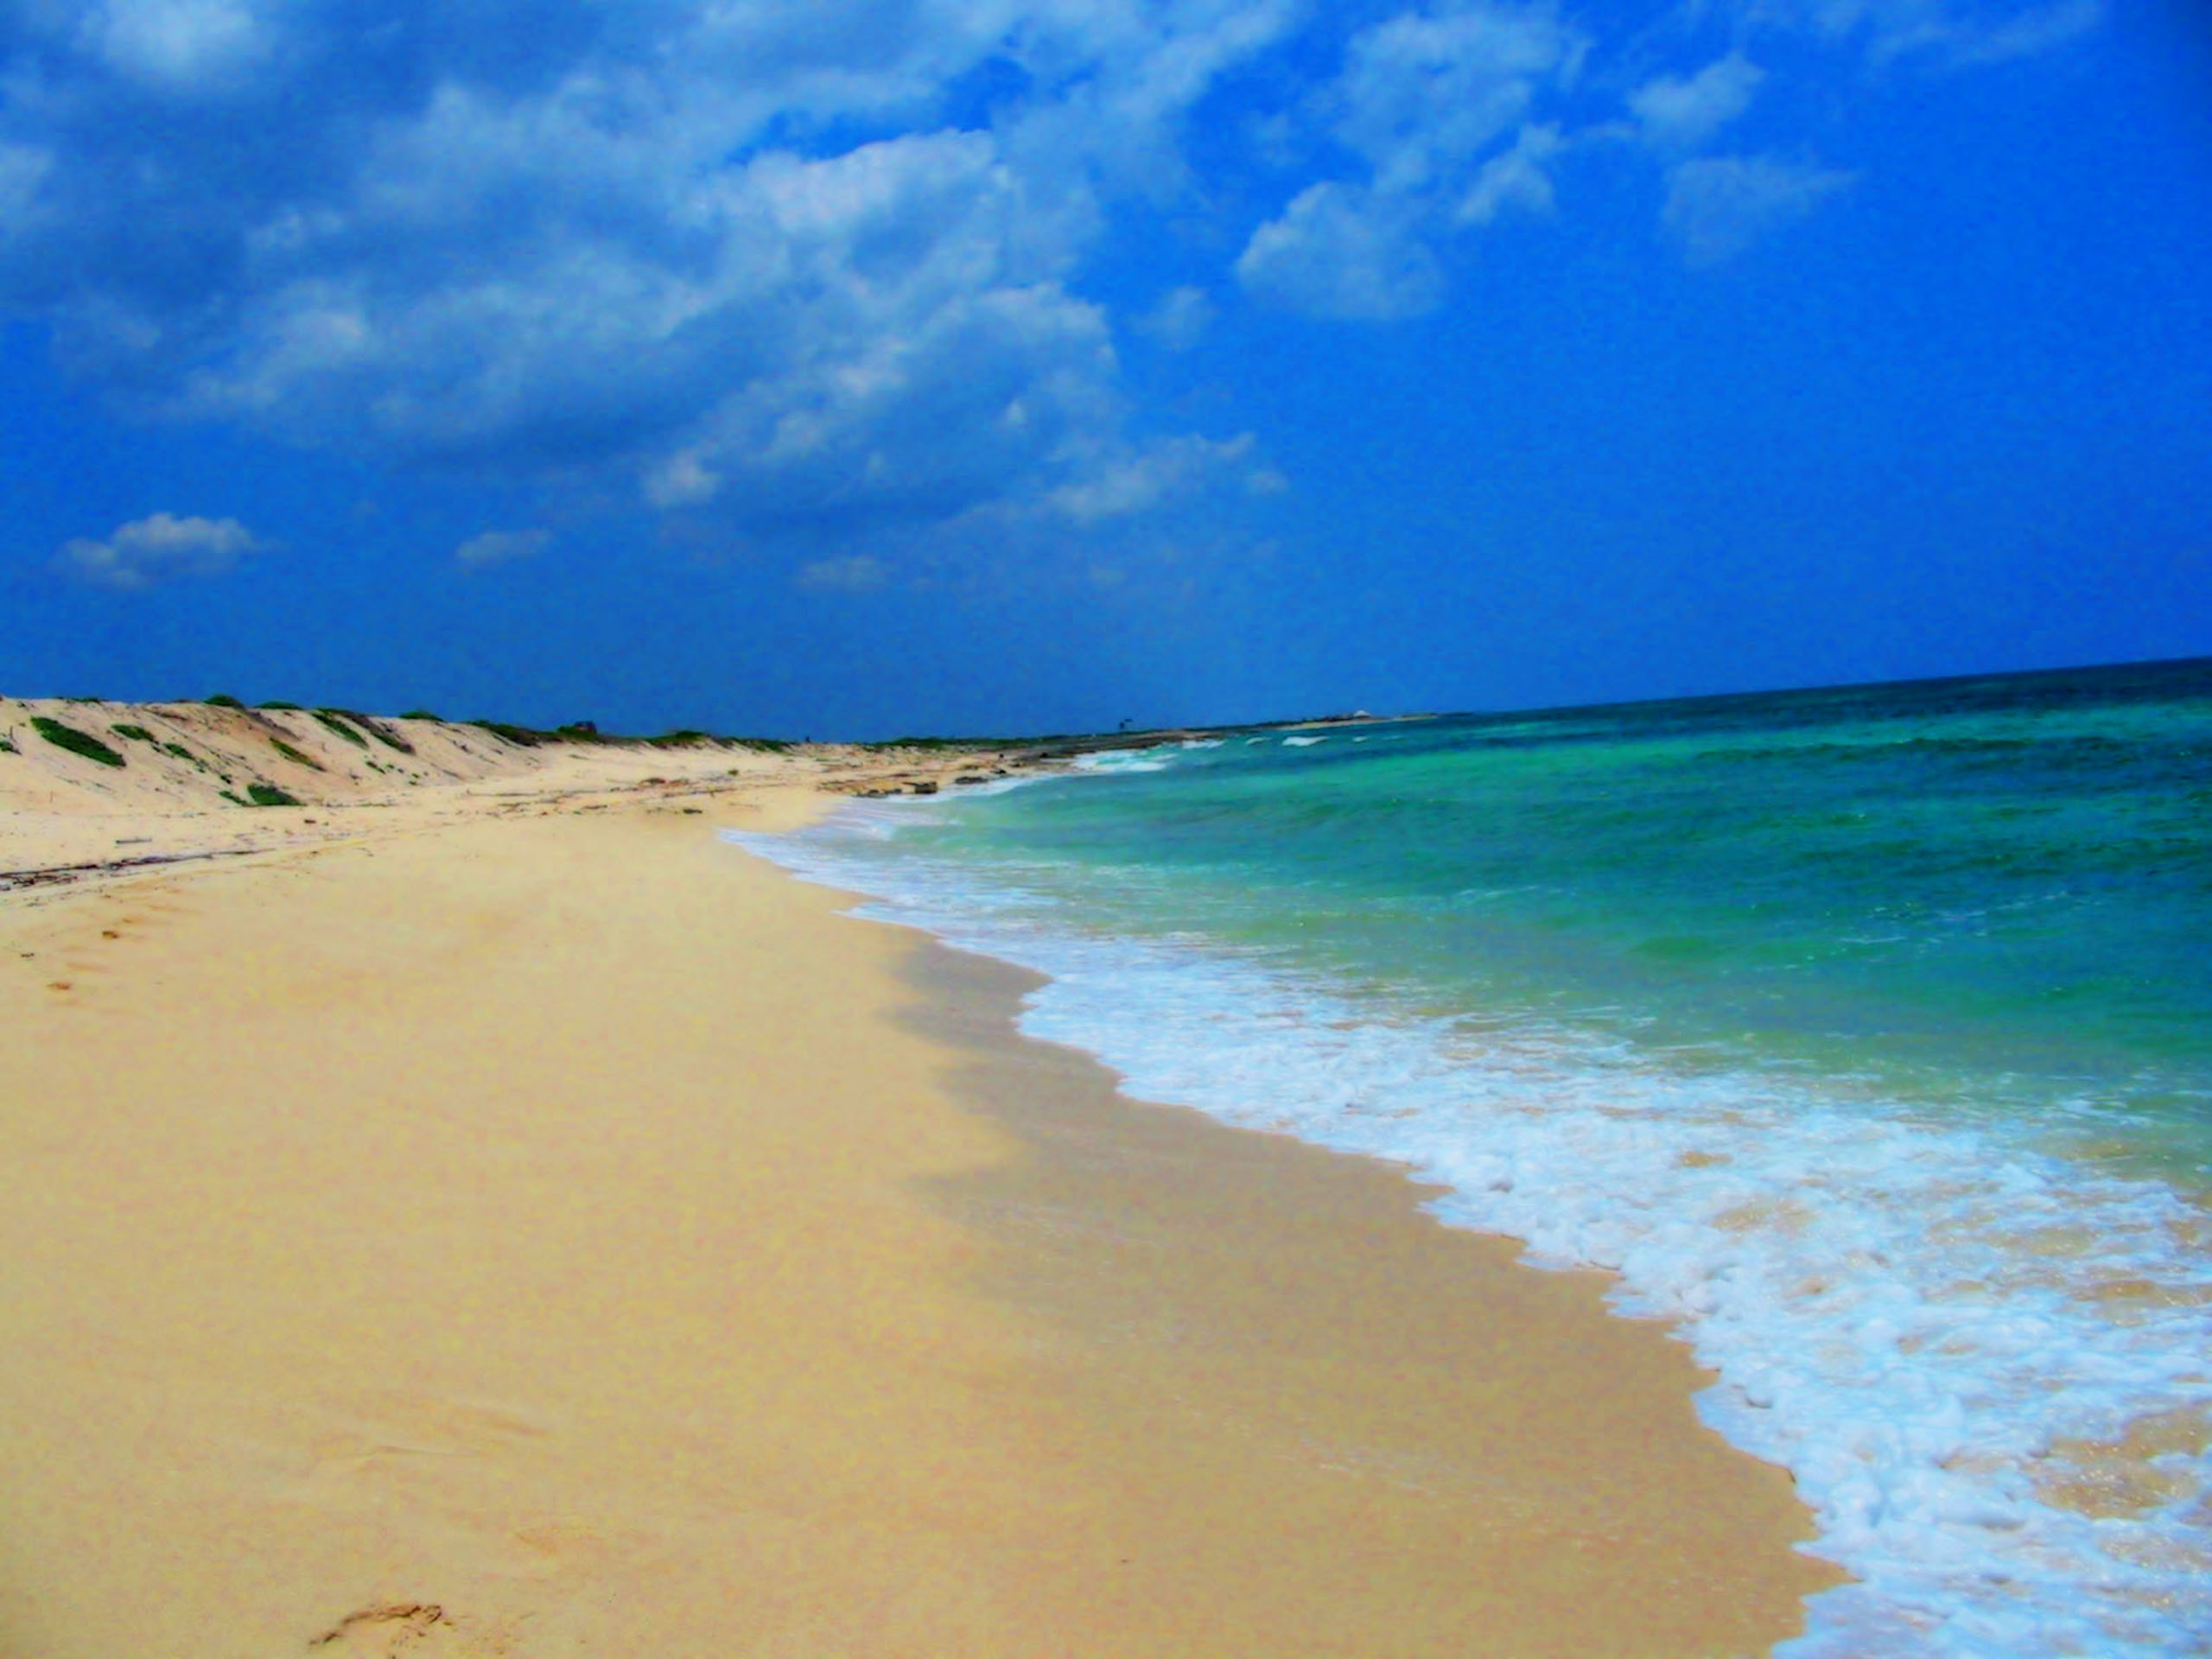 Amazing sand beach free desktop wallpapers for widescreen hd and wallpaper voltagebd Choice Image